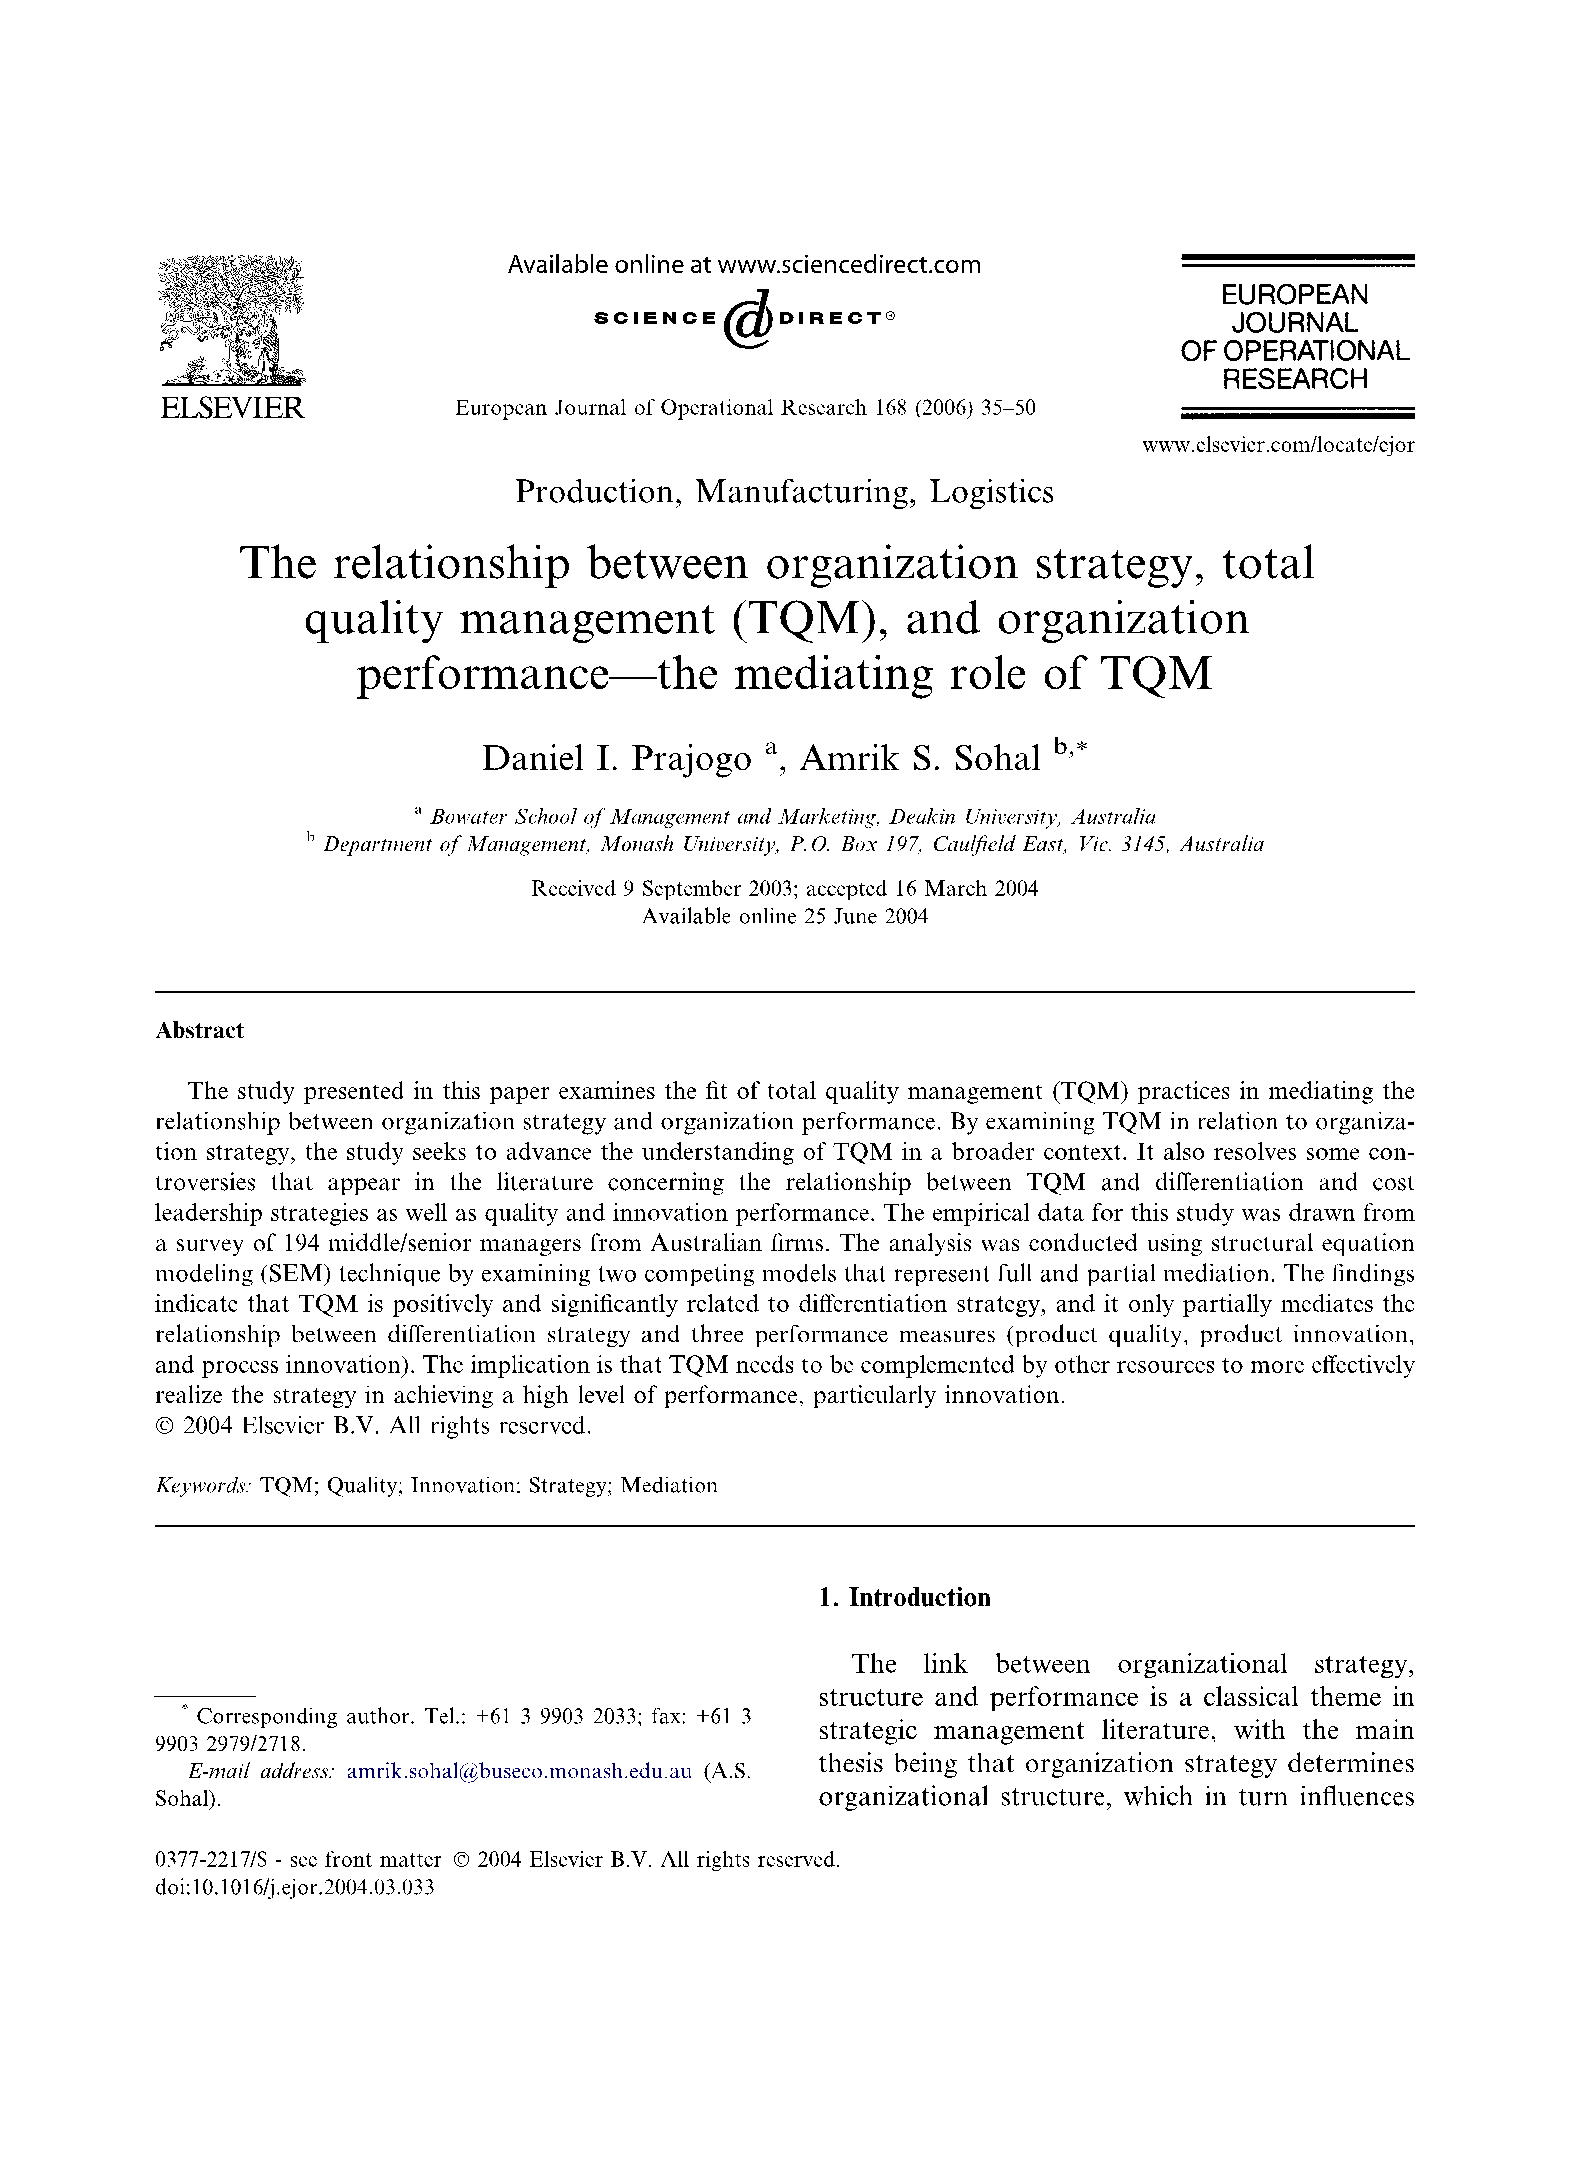 The relationship between organization strategy, total quality management (TQM), and organizationperformance––the mediating role of TQM 16